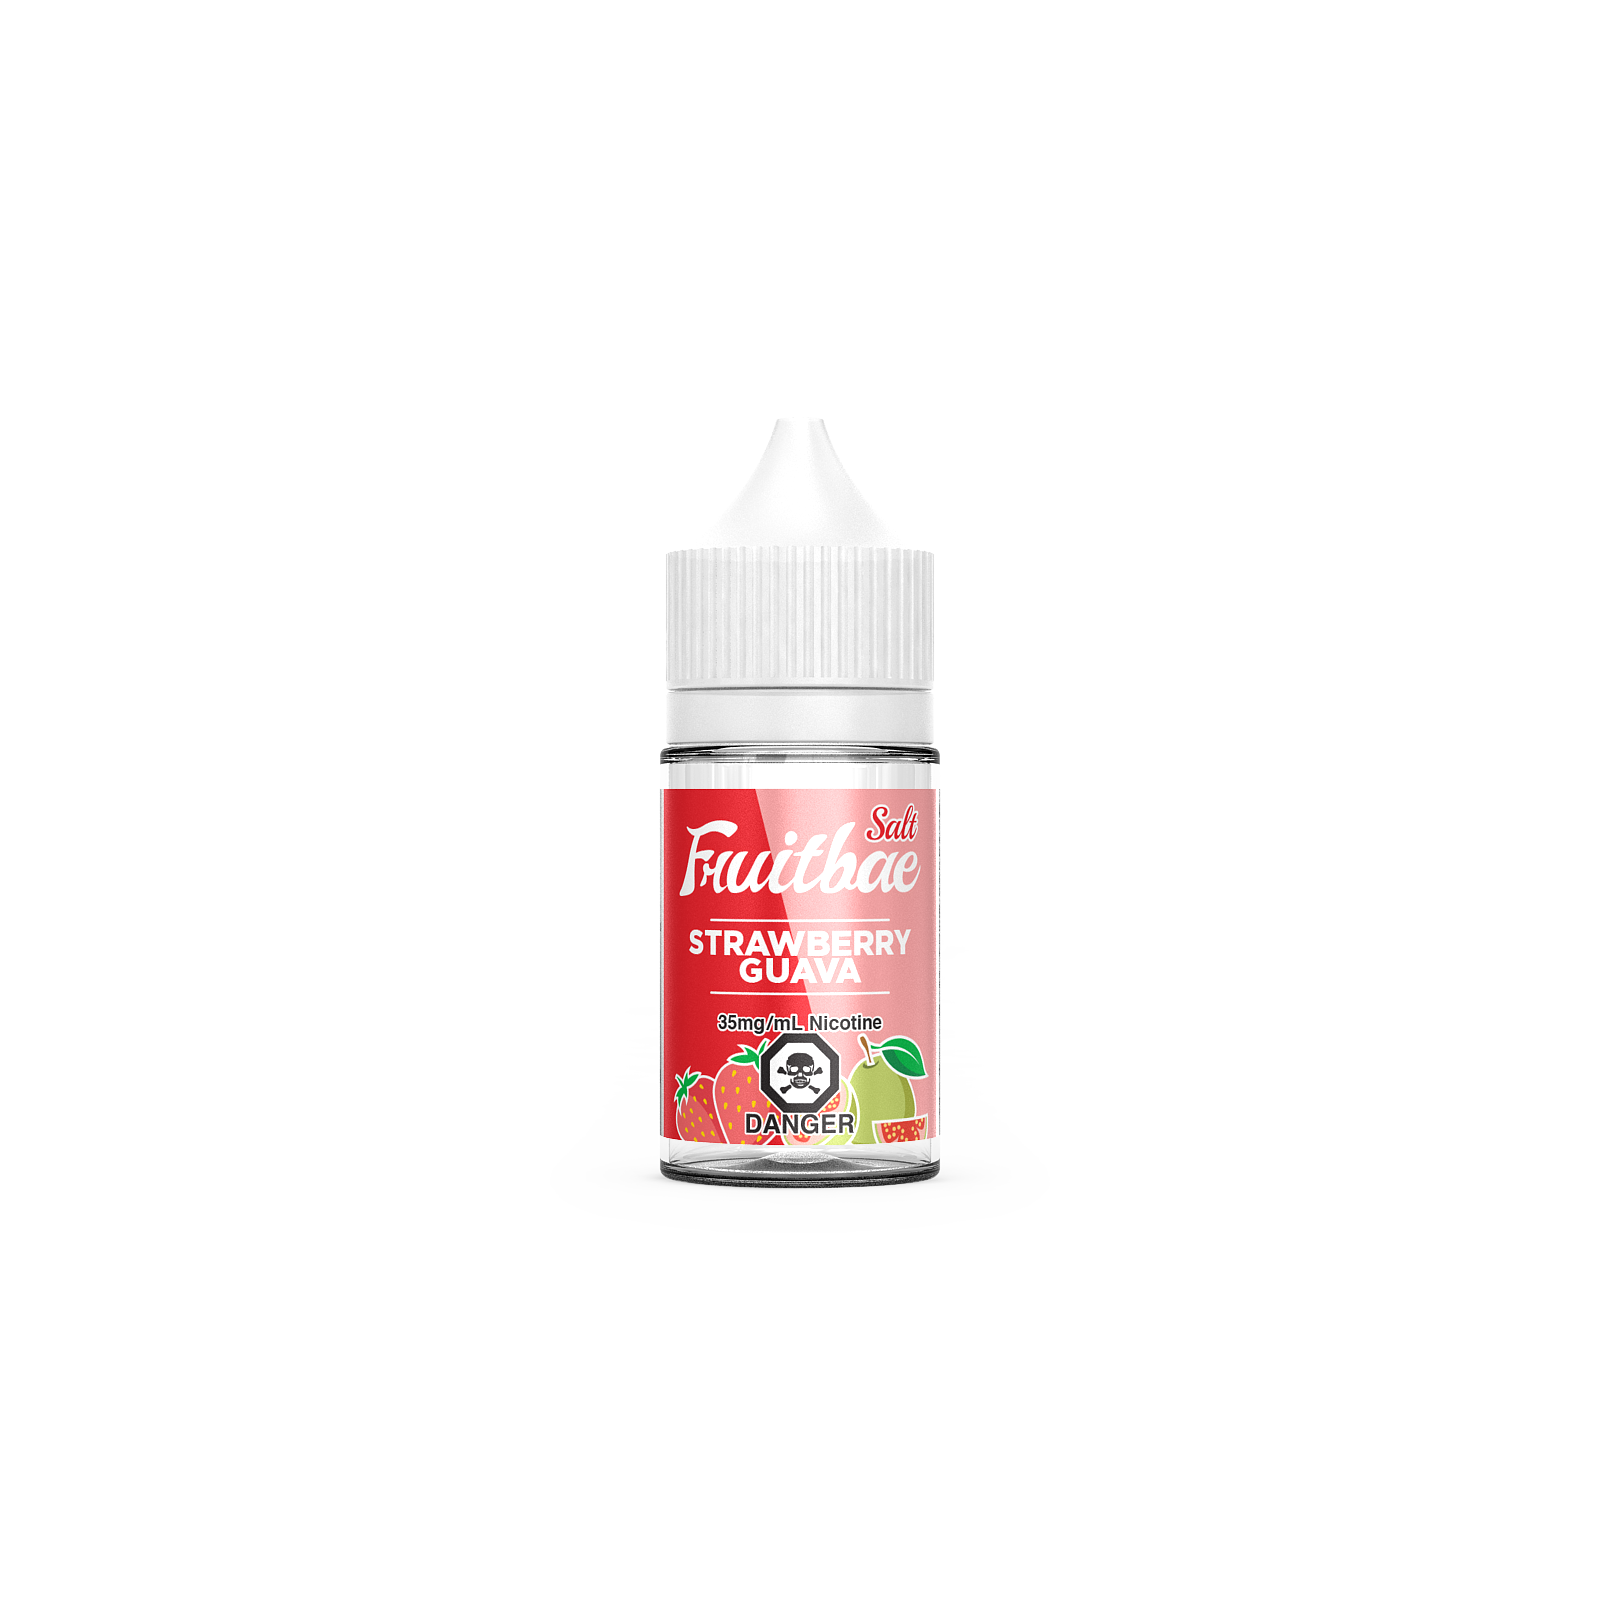 Fruitbae - Strawberry Guava 30mL